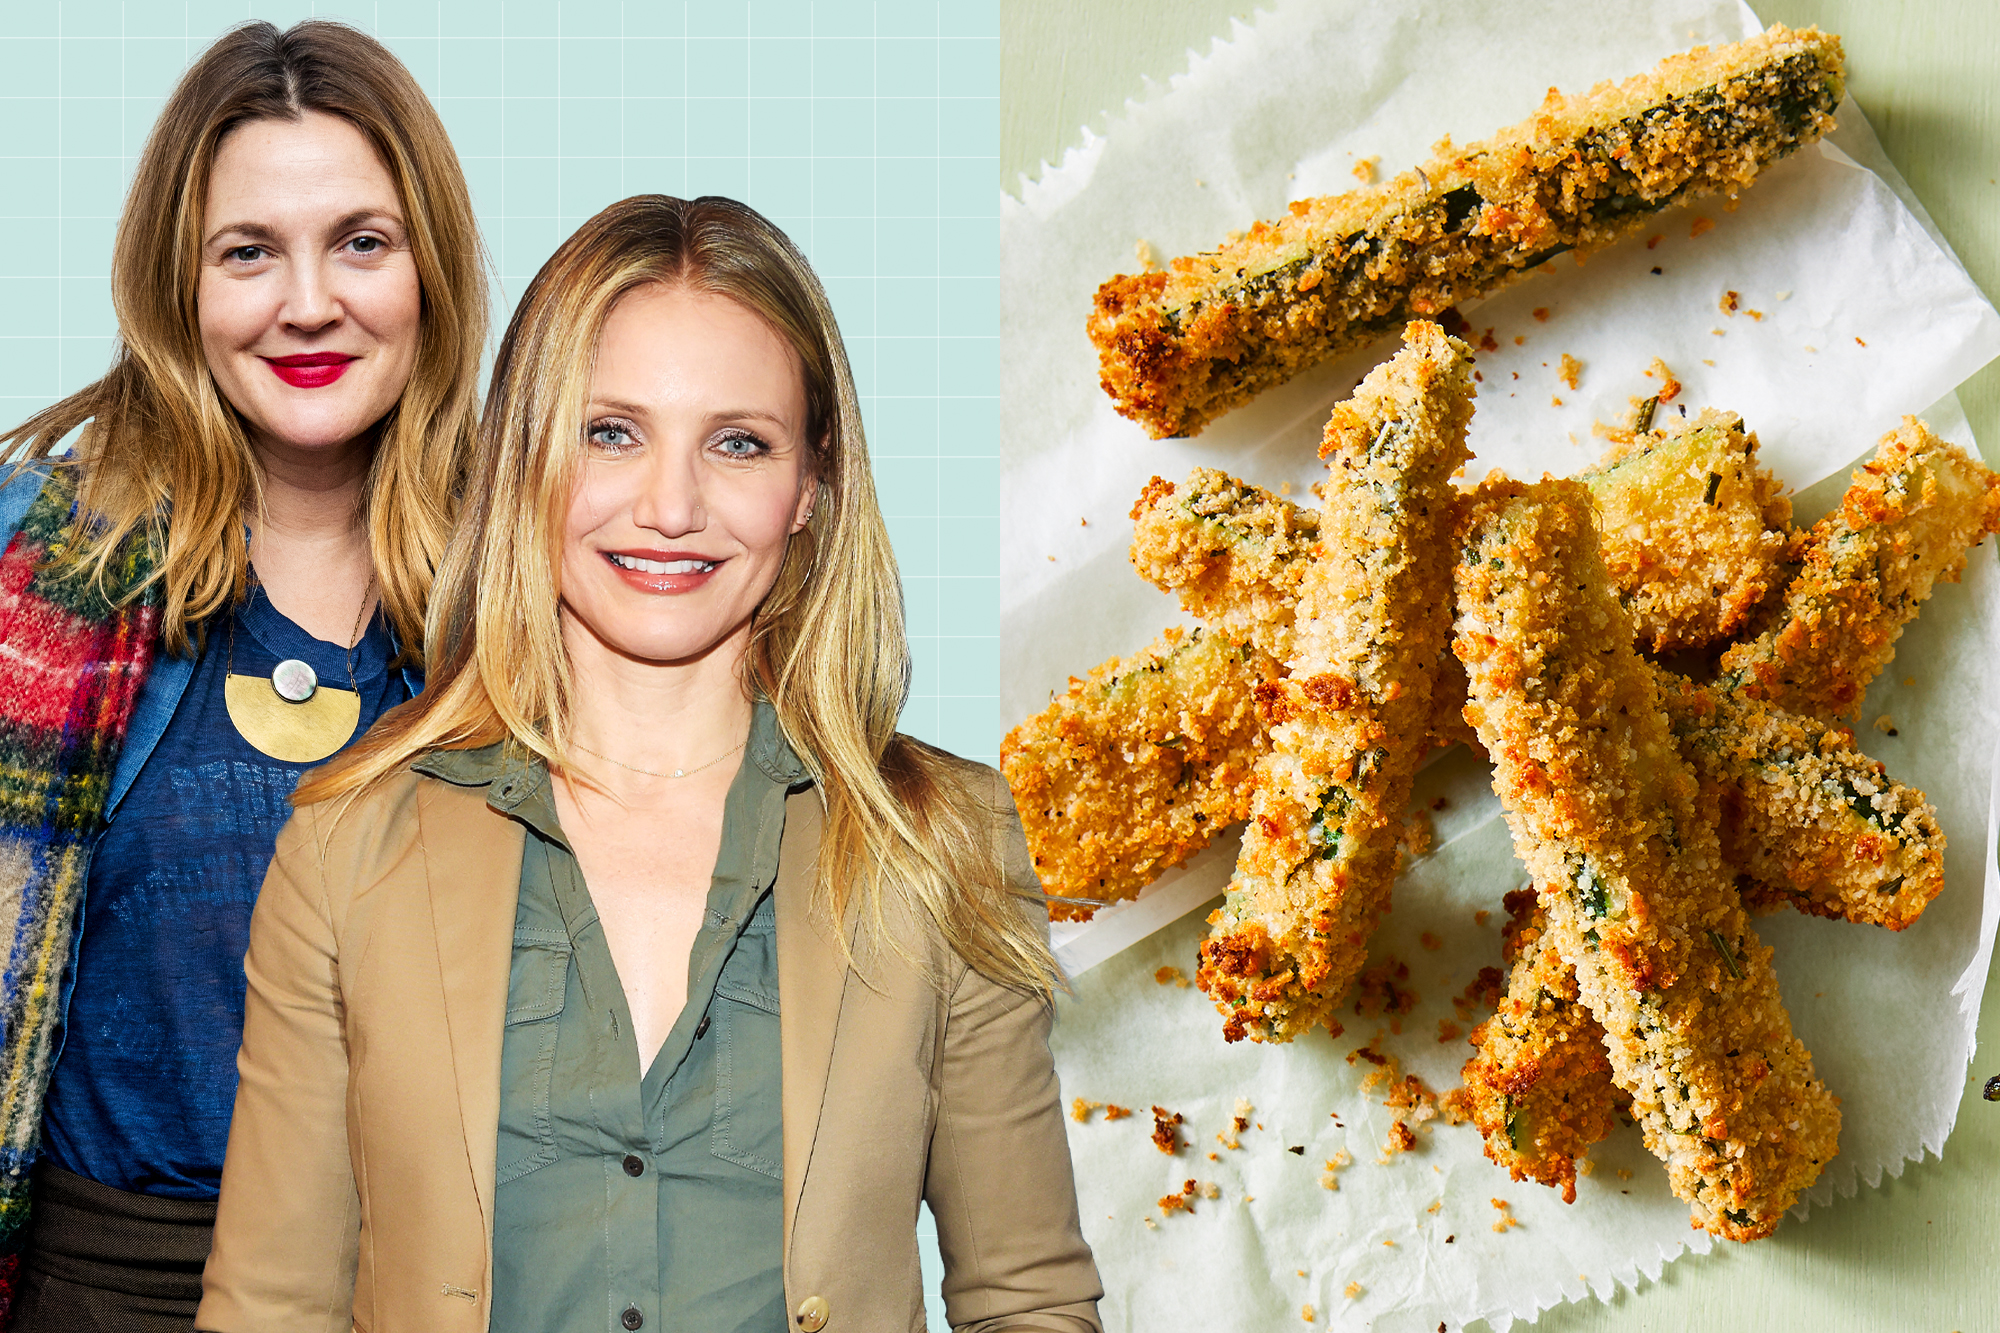 Cameron Diaz and Drew Barrymore on a designed background next to Parmesan-Rosemary Baked Zucchini Fries